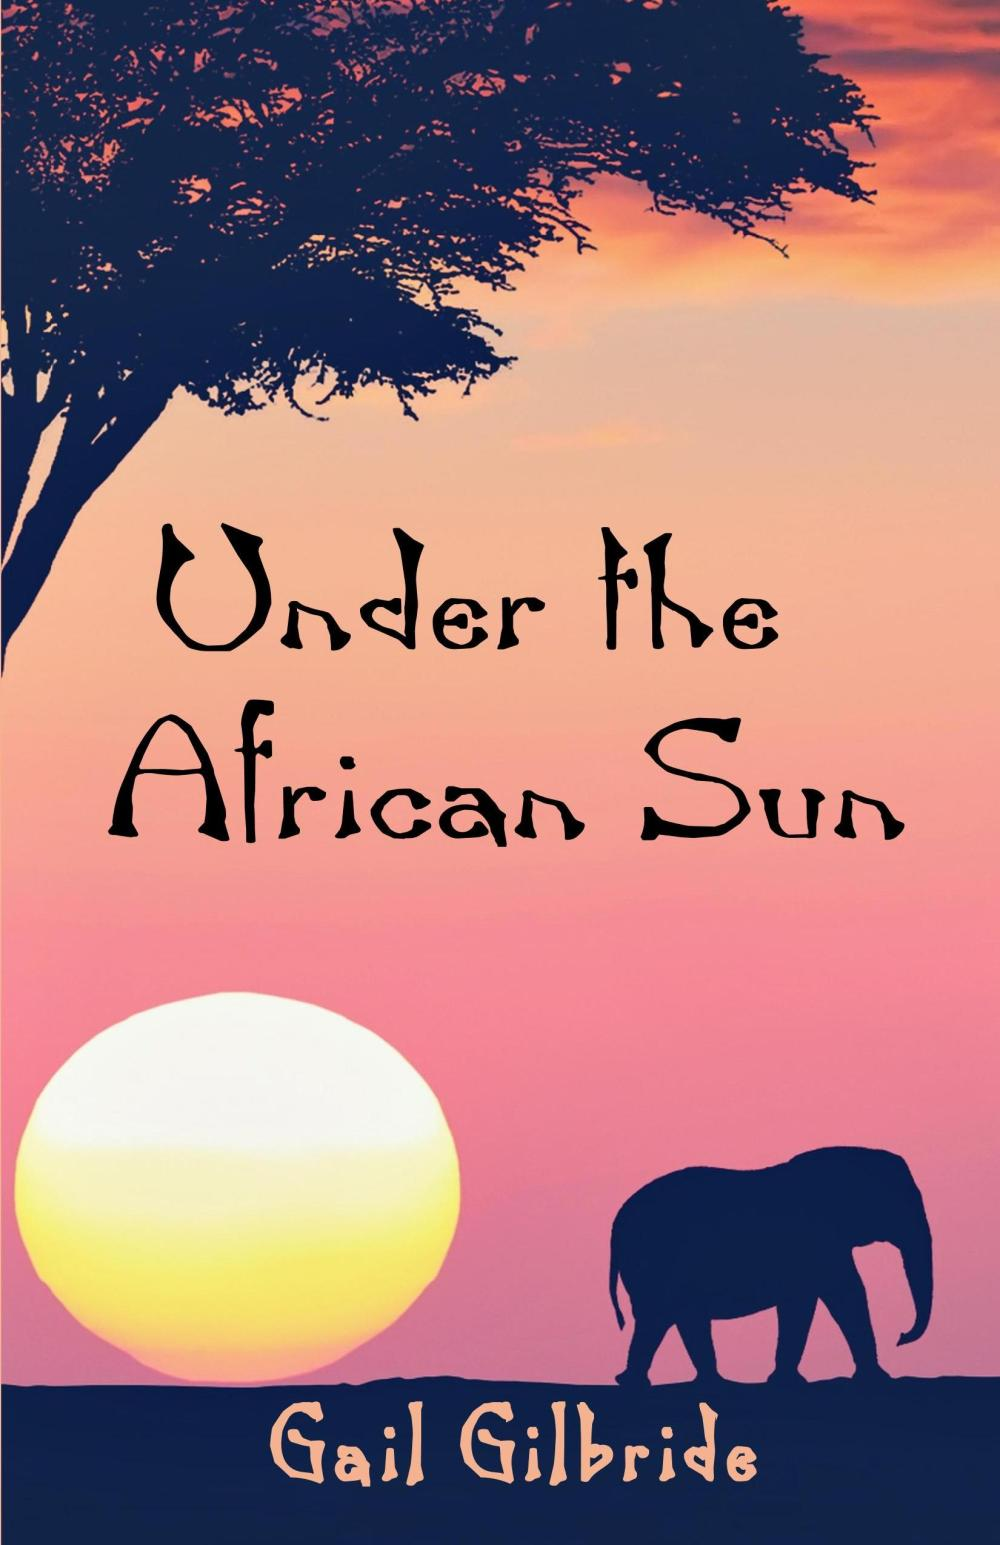 under-the-african-sun-front-1